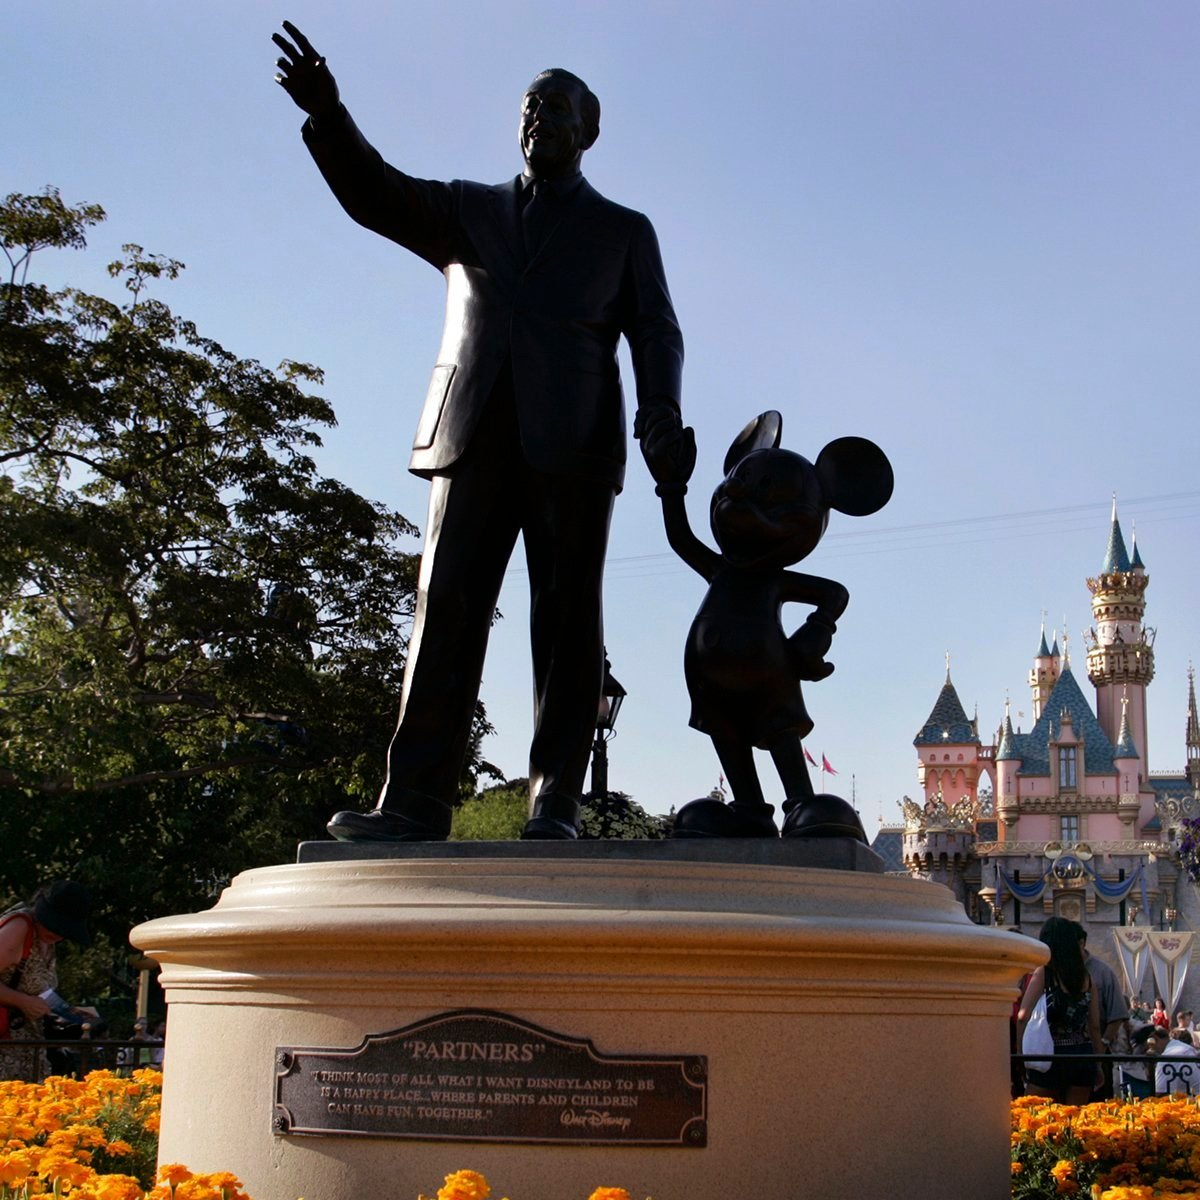 "Sleeping Beauty's Castle can be seen in the backround as people make their way past the ""Partners"" statue (depicting Walt Disney and Mickey Mouse) at Disneyland, Friday July 15, 2005, in Anaheim. Disneyland celebrated its 50th anniversary on July 17, 2005. (Photo by Richard Hartog/Los Angeles Times via Getty Images)"